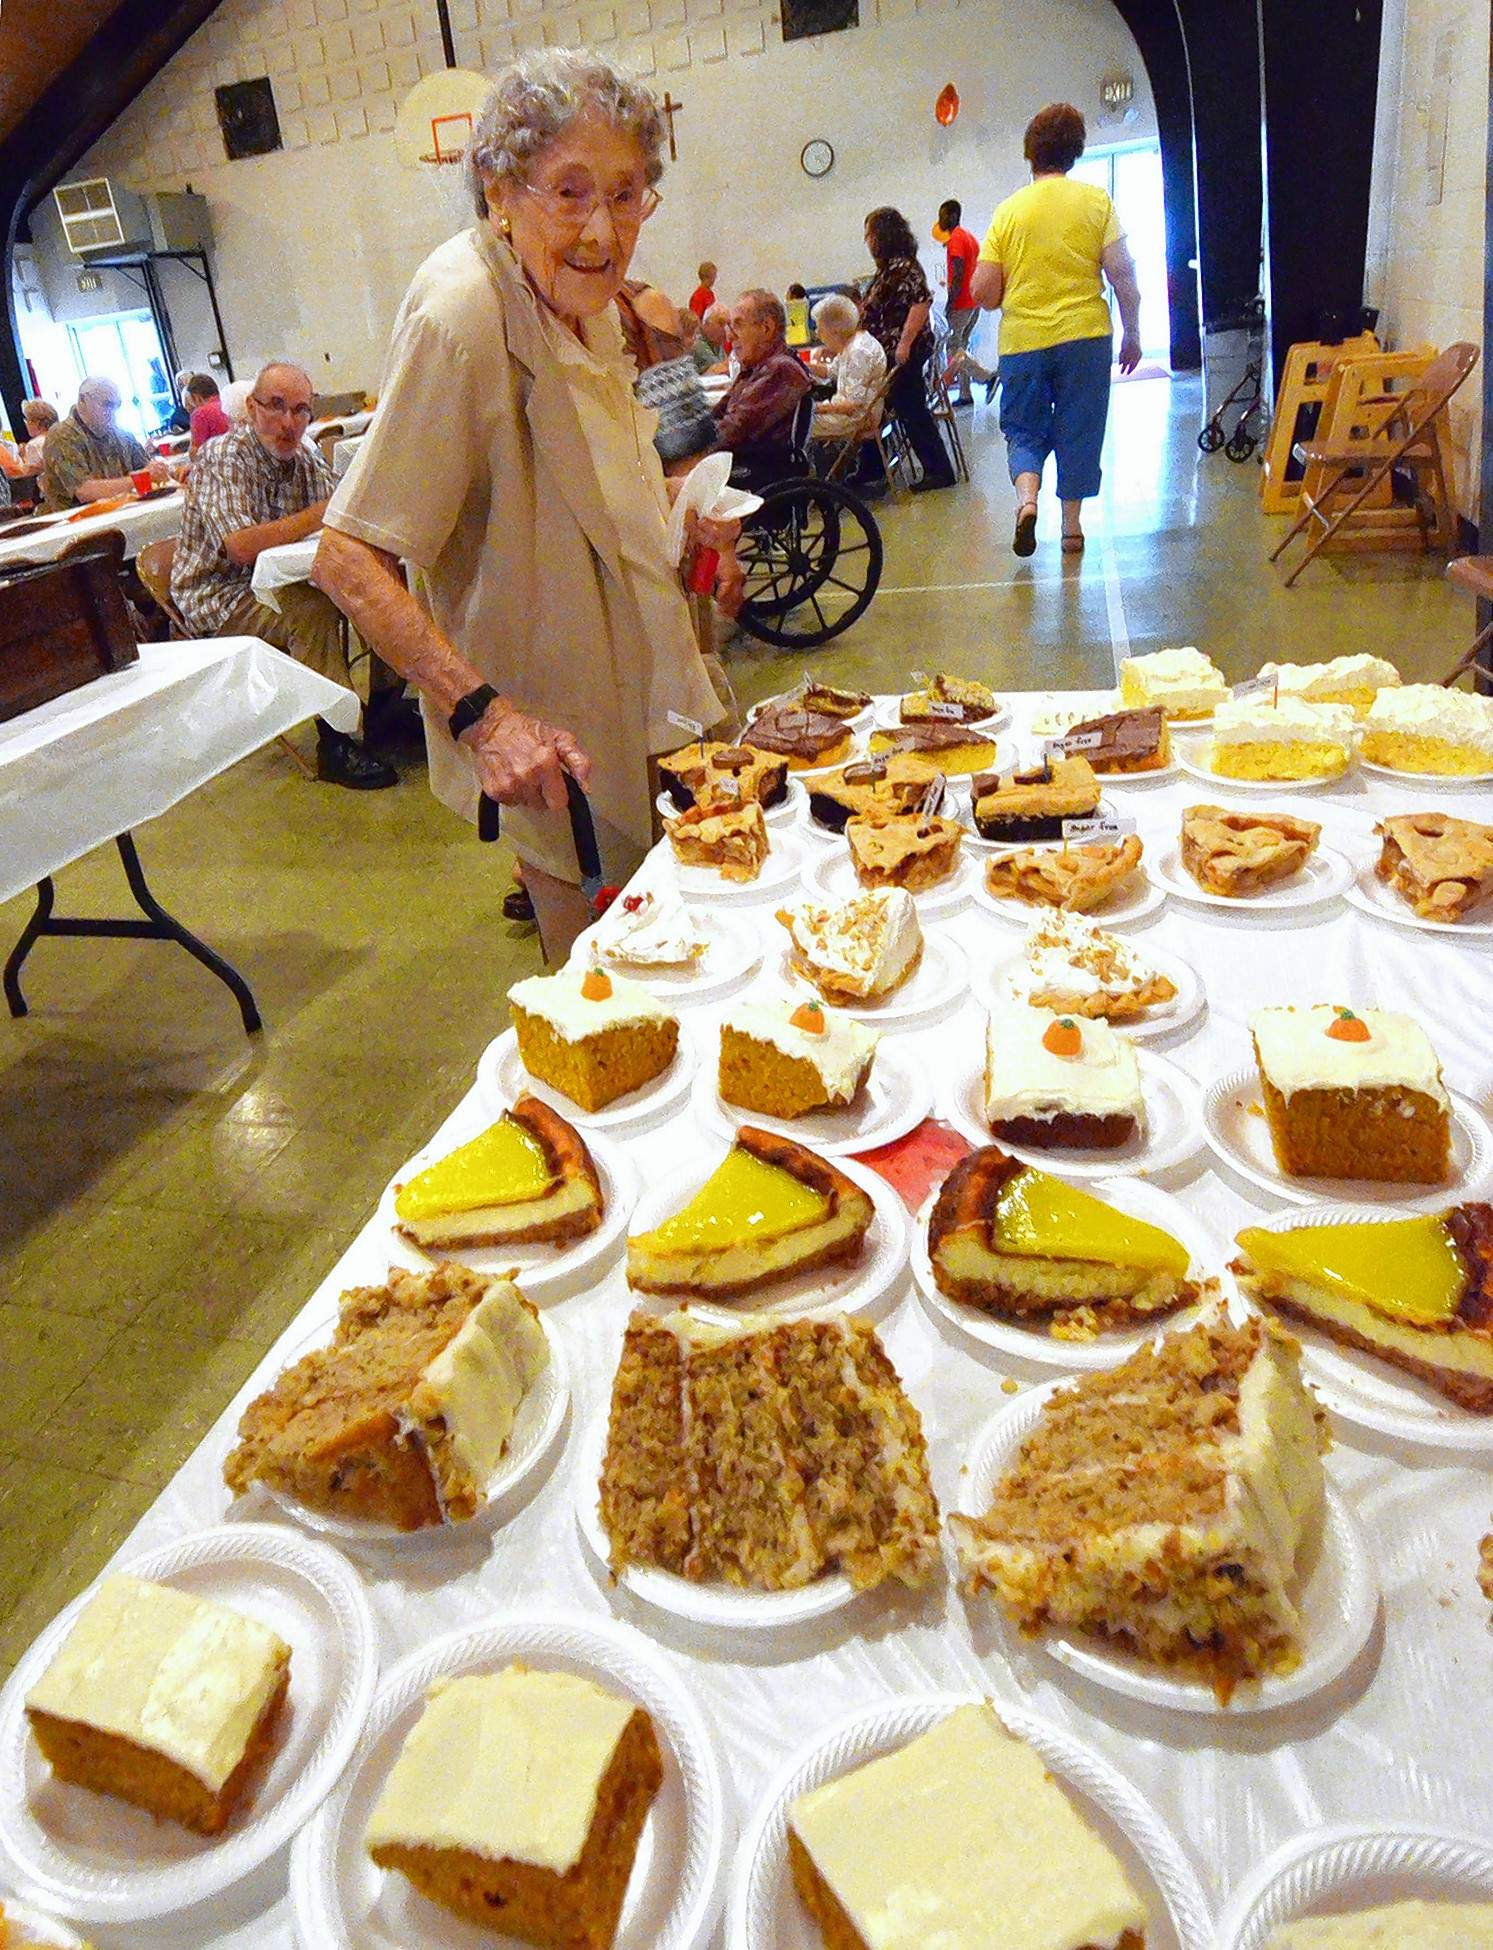 Lebera Pyle, 104, checked out the dessert table at the event.